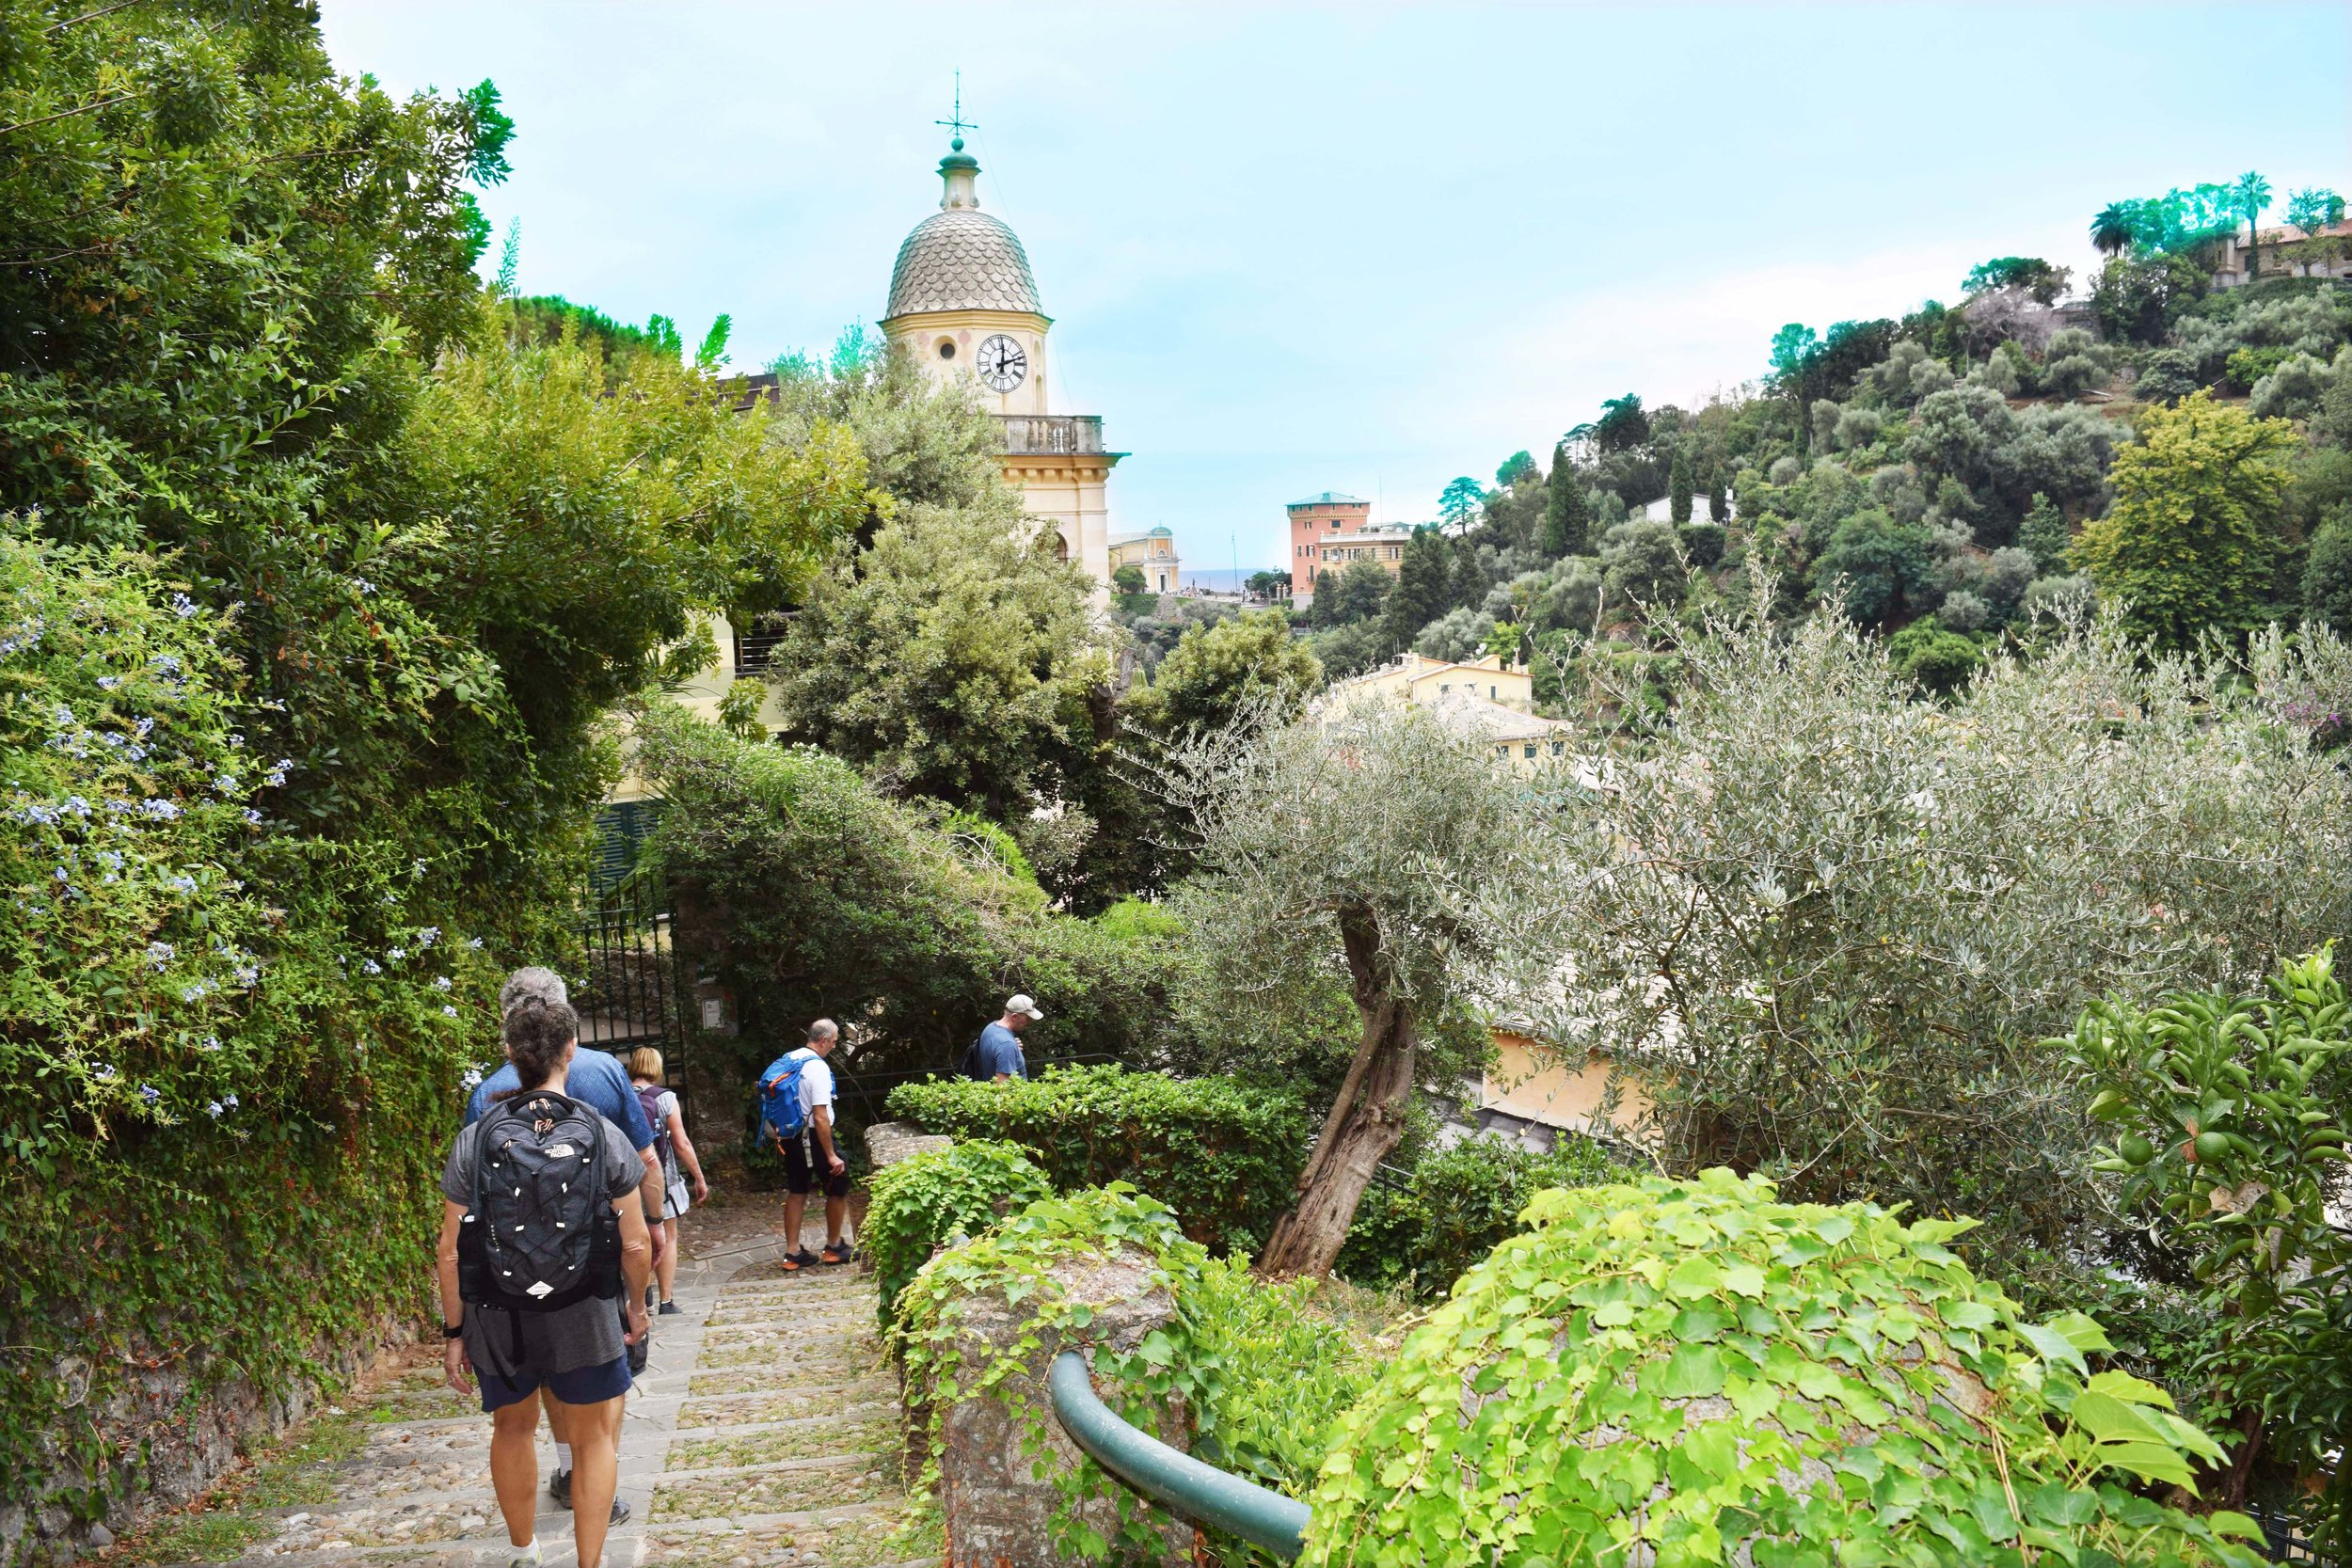 The final leg of the hike from Santa Margherita to Portofino is downhill into the picturesque Mediterranean village.